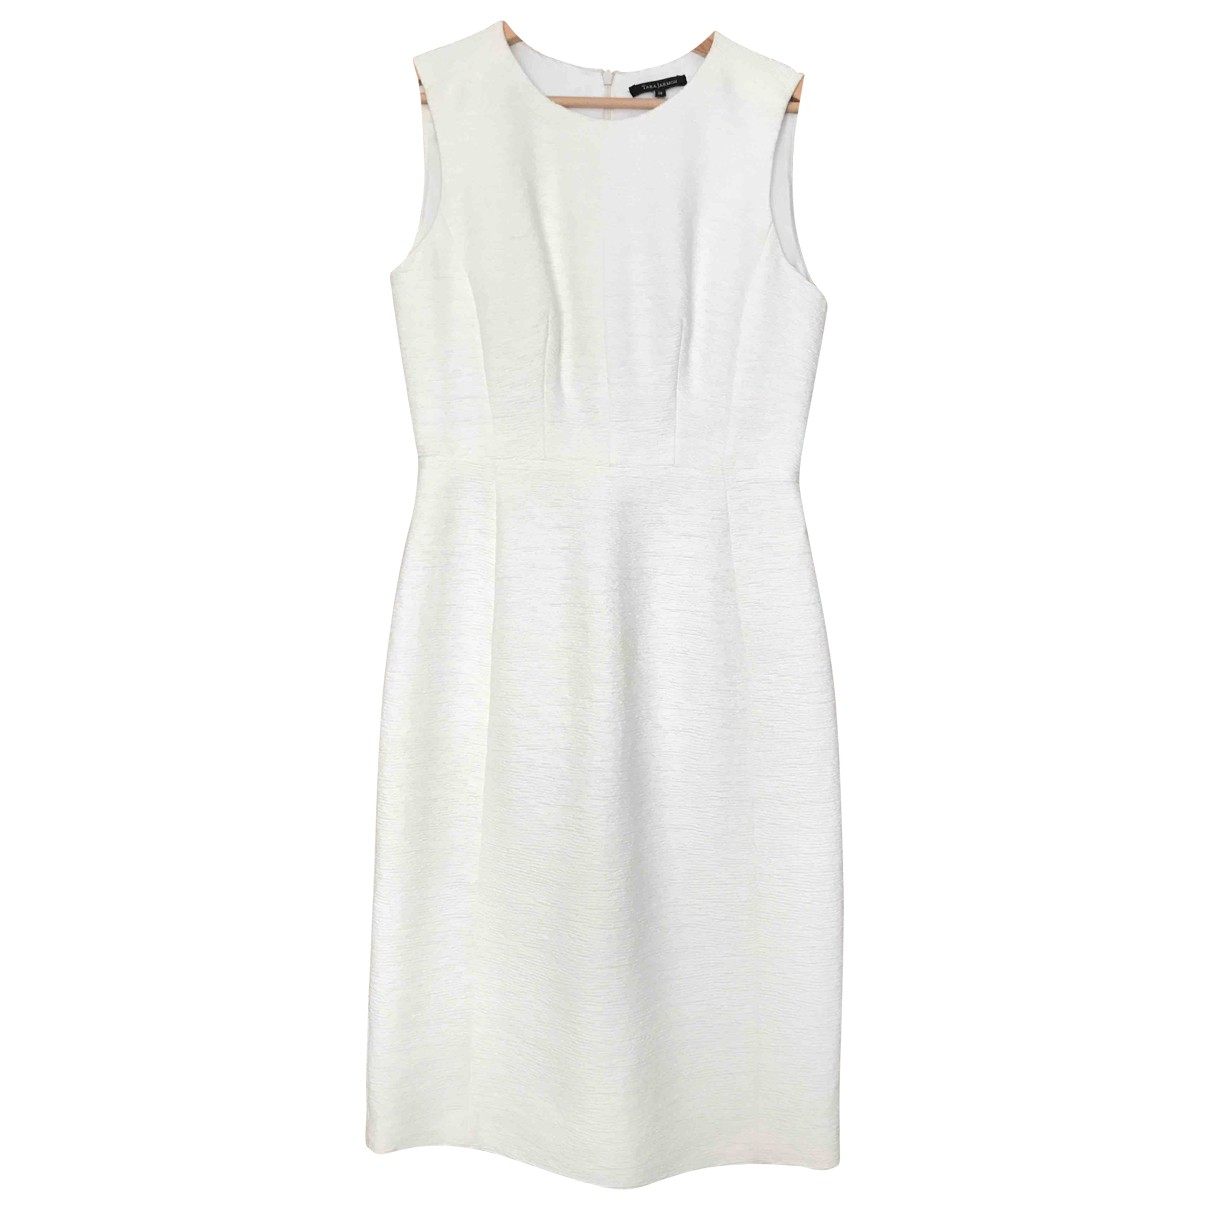 Tara Jarmon \N White Cotton dress for Women 38 FR